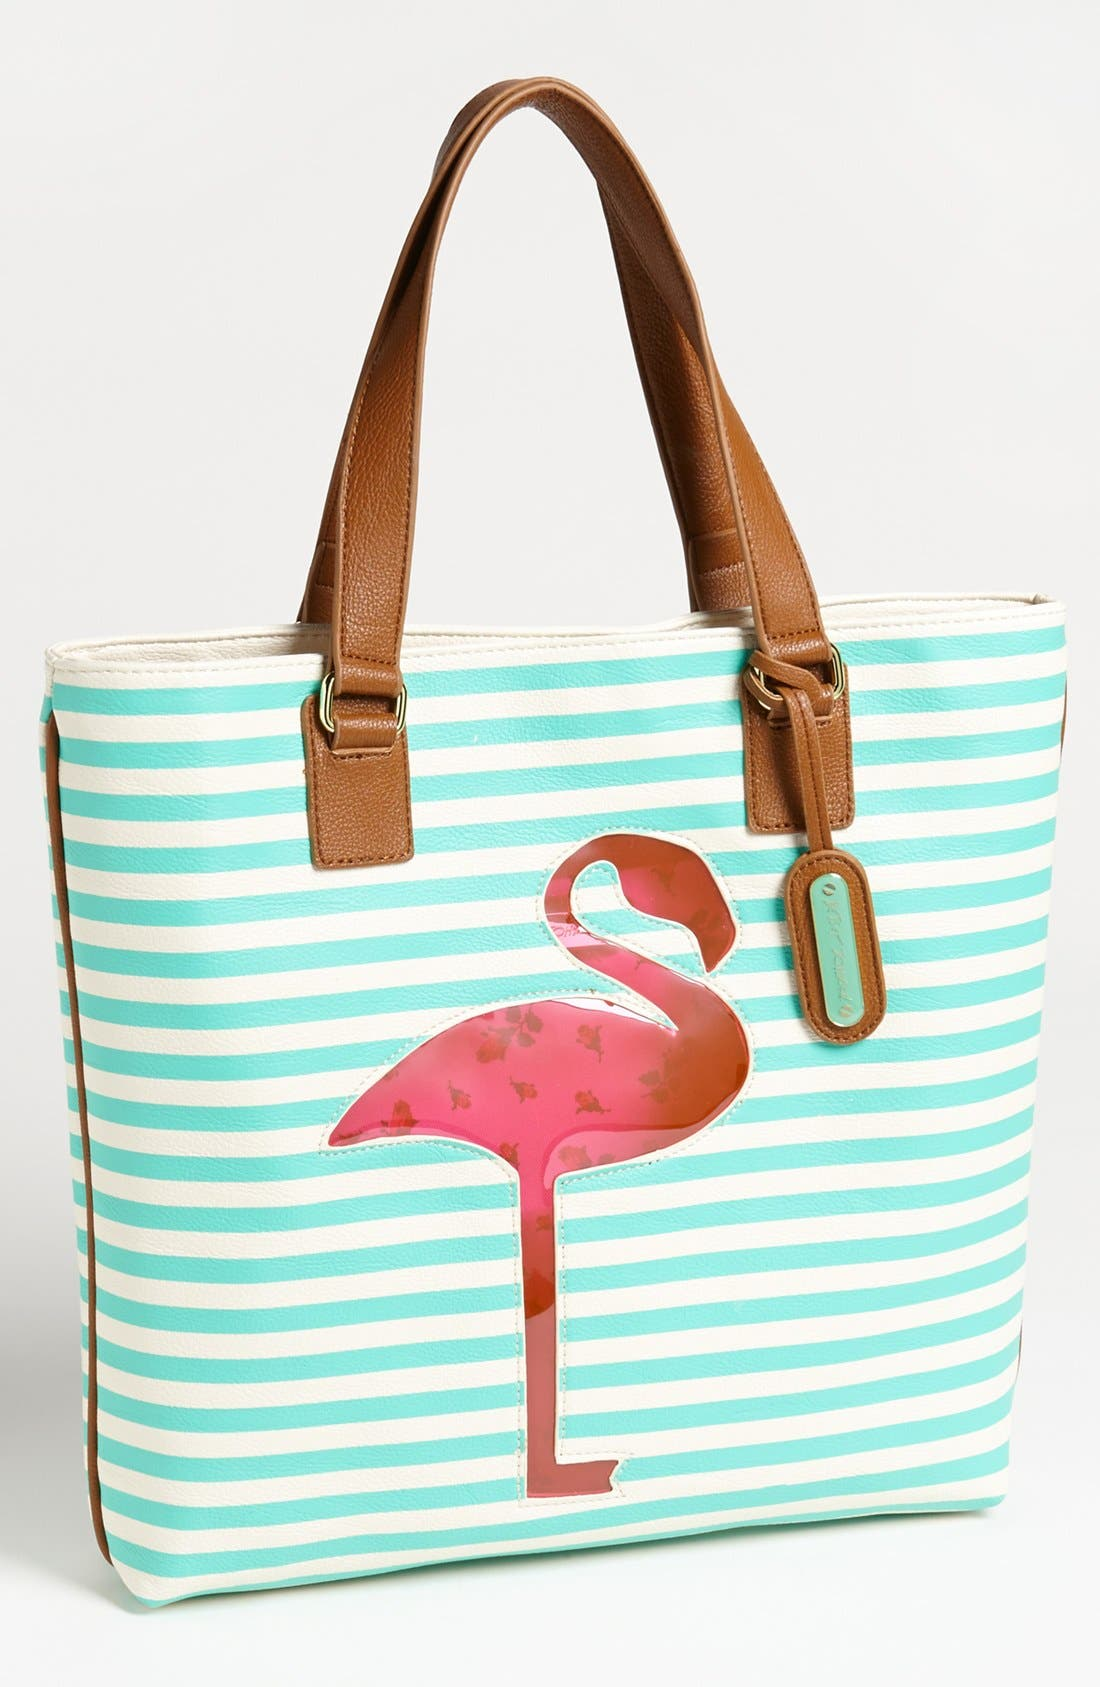 Alternate Image 1 Selected - Betsey Johnson 'Cut It Up' Tote